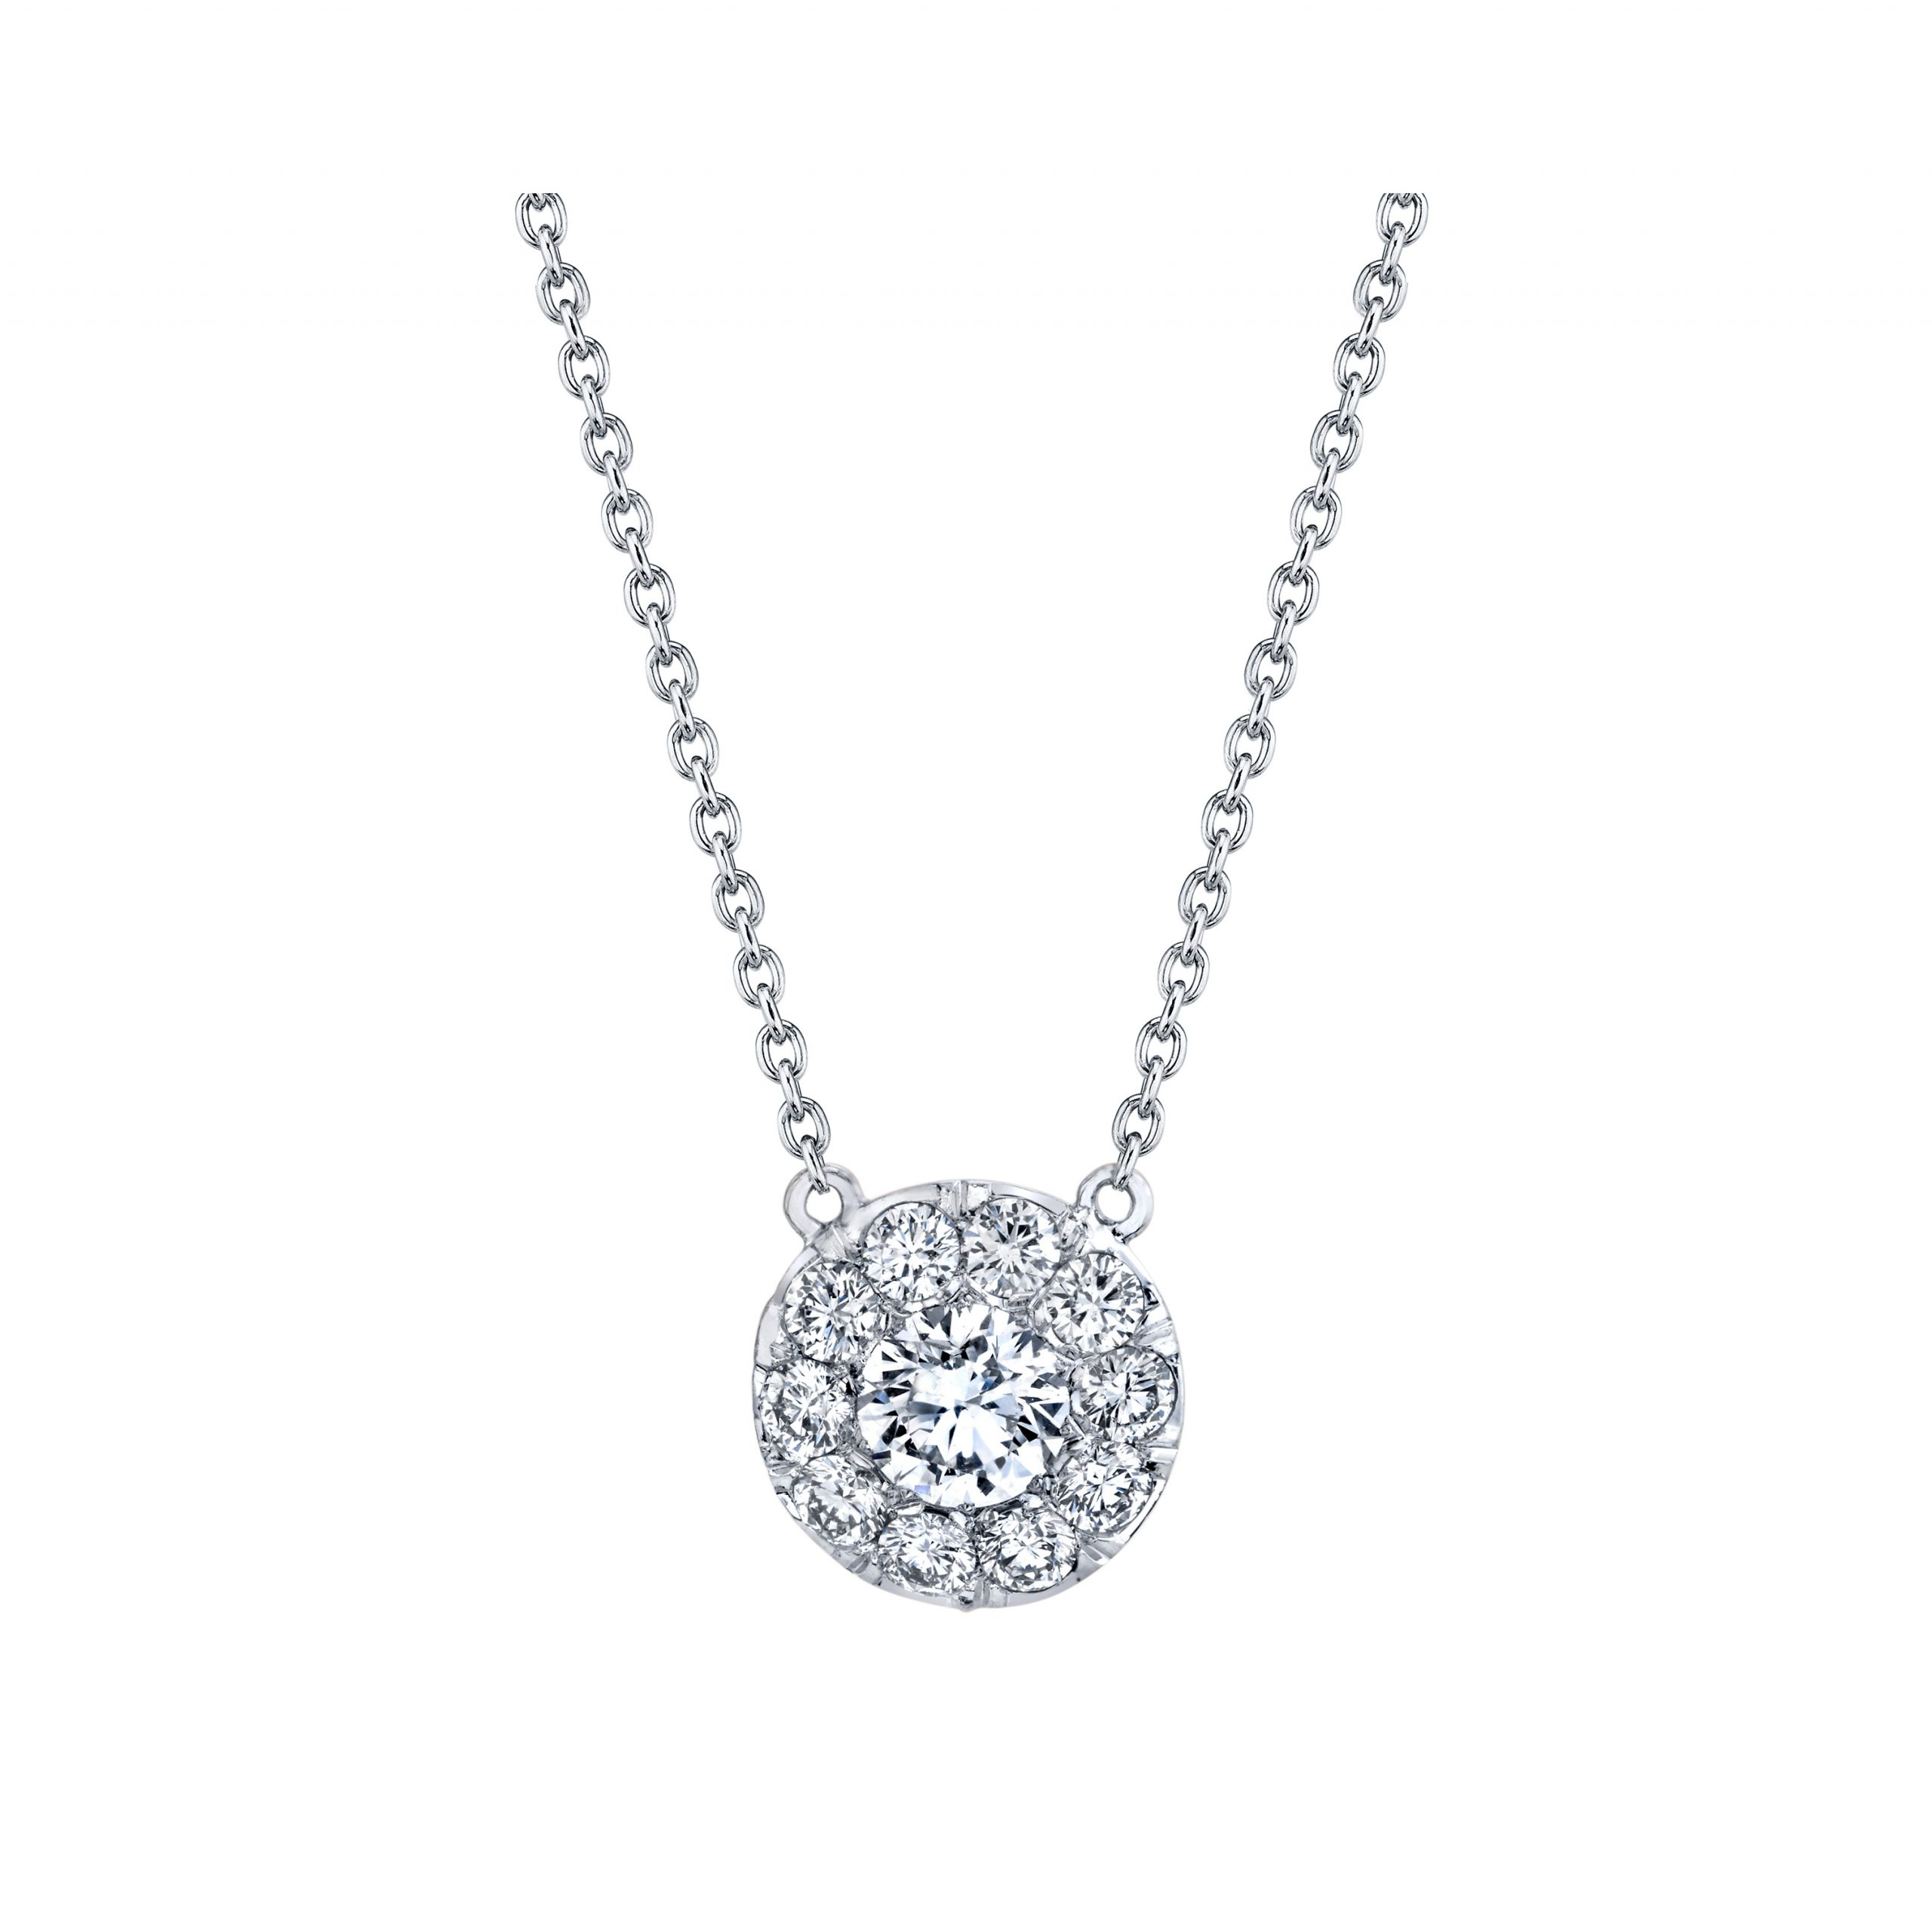 Lucile Round Brilliant Seamless Solitaire® Diamond Necklace in 18k White Gold Front Shot by Oui by Jean Dousset